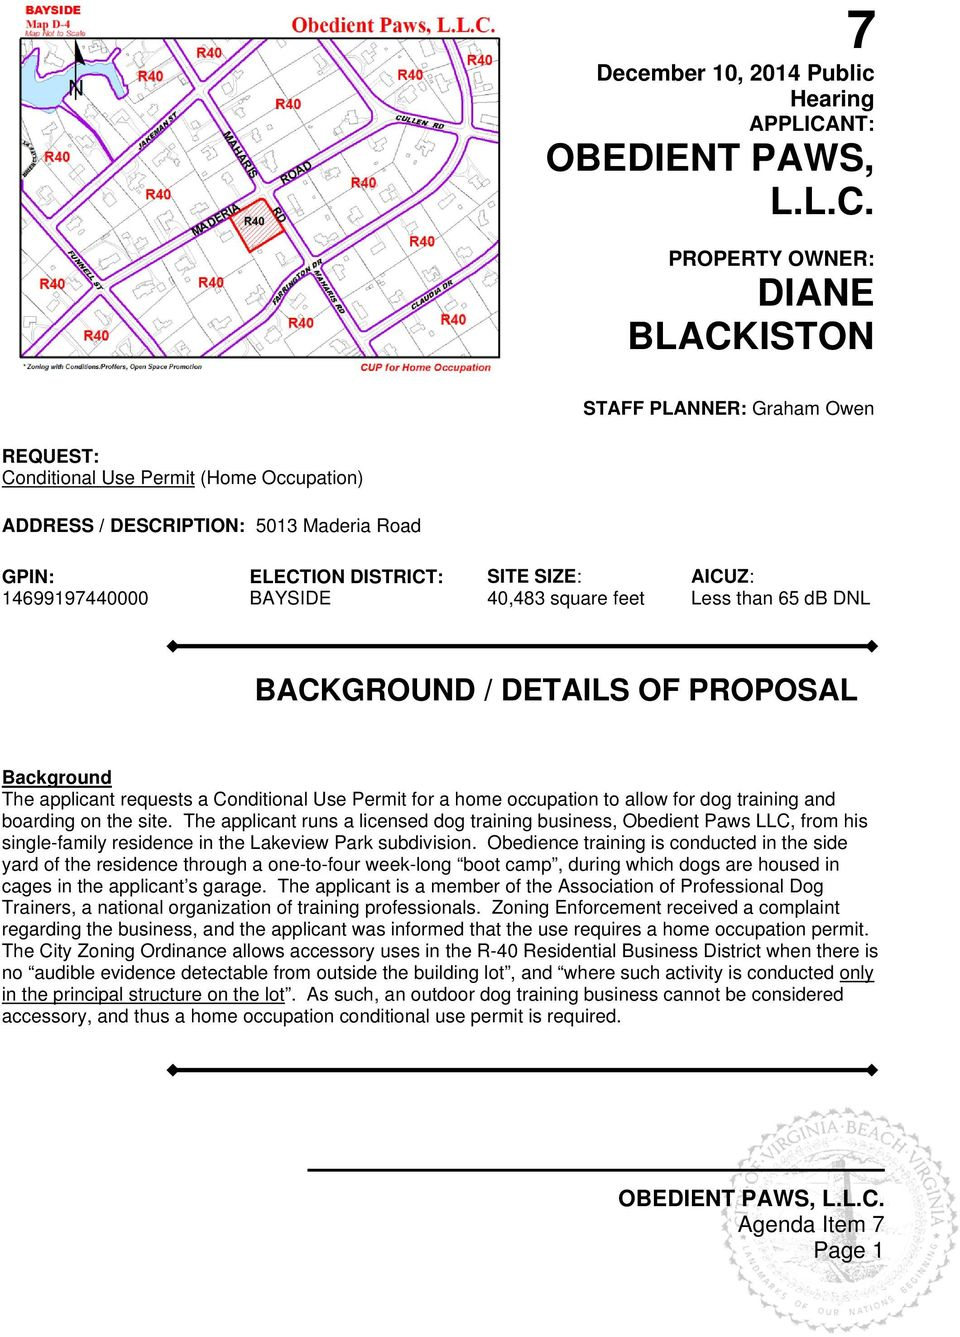 PROPERTY OWNER: DIANE BLACKISTON STAFF PLANNER: Graham Owen REQUEST: Conditional Use Permit (Home Occupation) ADDRESS / DESCRIPTION: 5013 Maderia Road GPIN: 14699197440000 ELECTION DISTRICT: BAYSIDE